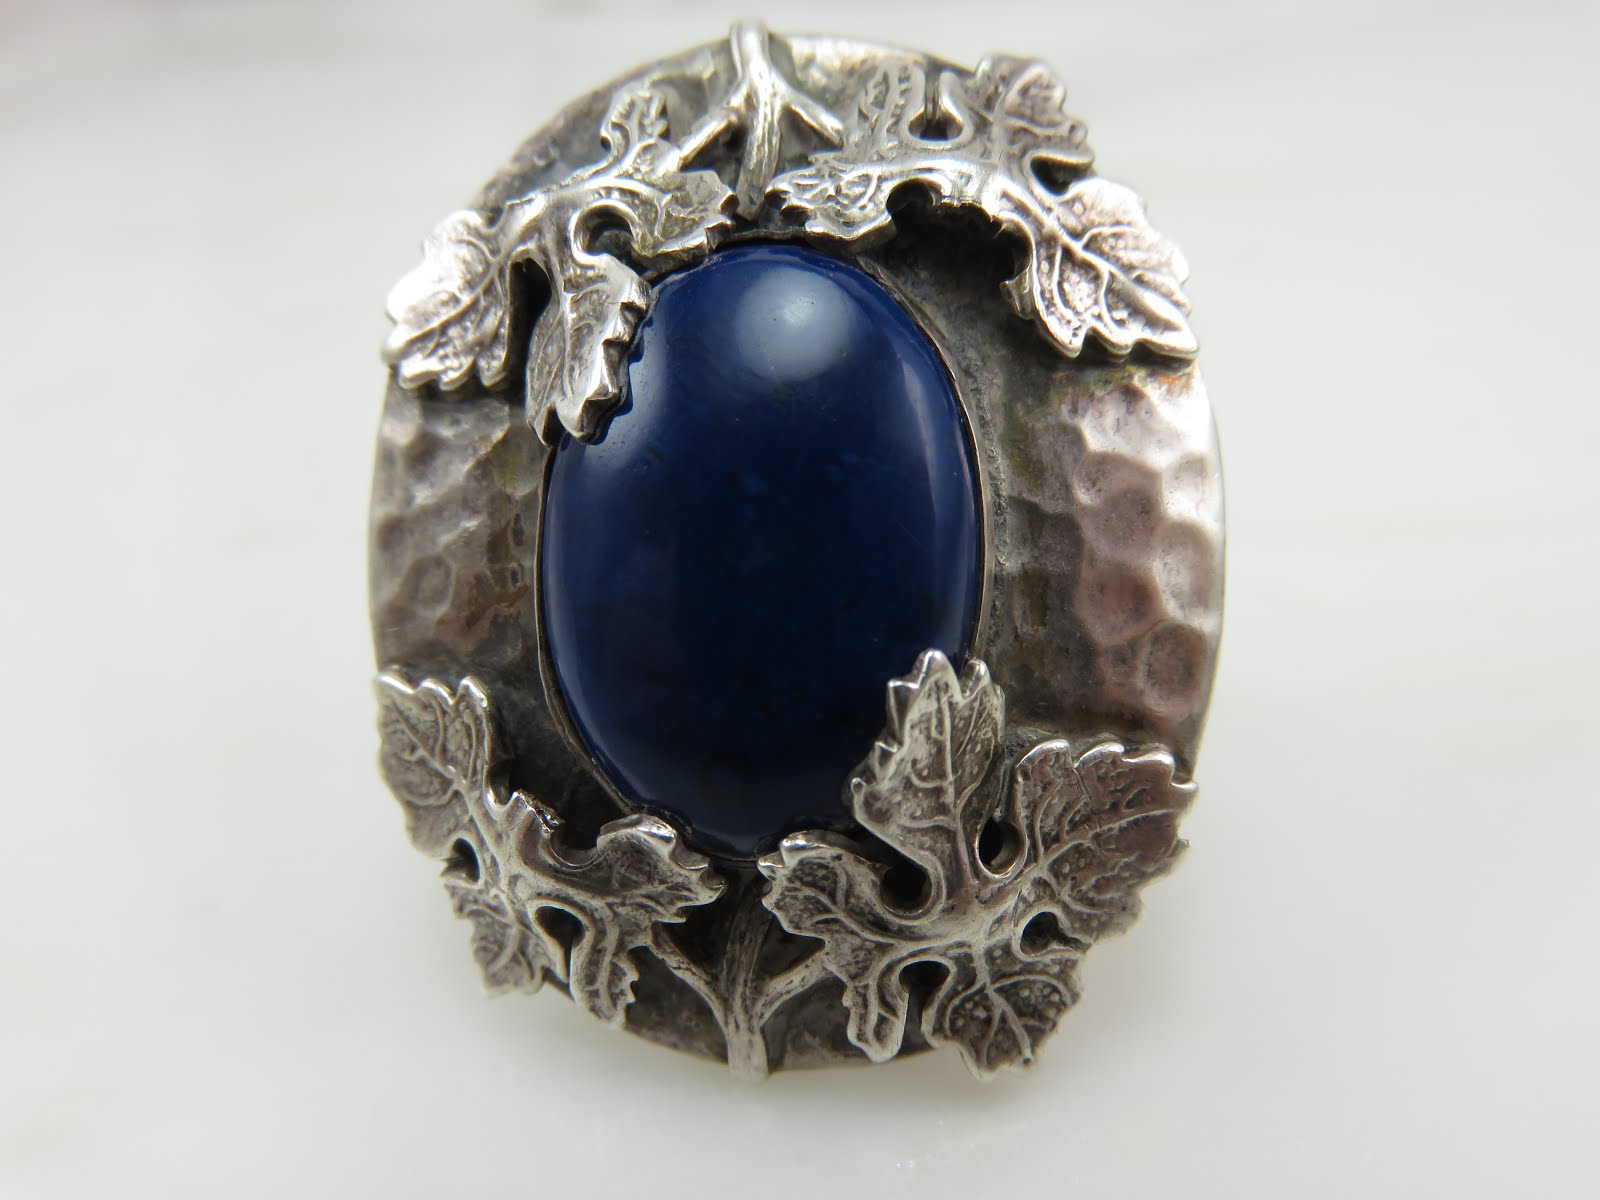 Arts & Crafts Era Silver Ring